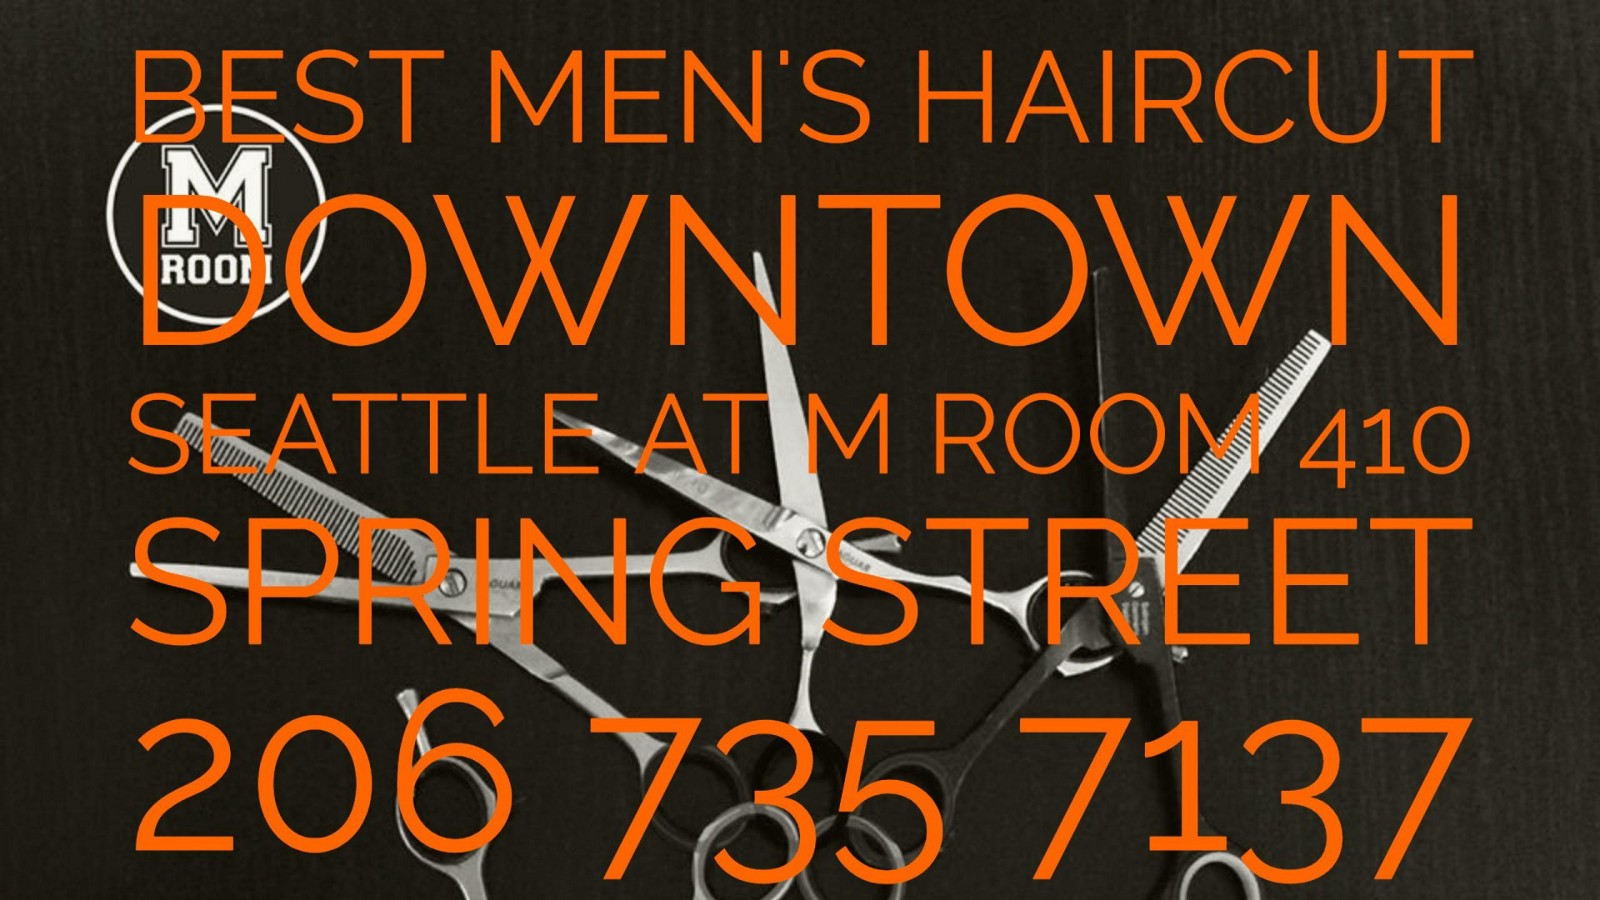 Best Mens Haircut Downtown Seattle At M Room 410 Spring Street 206